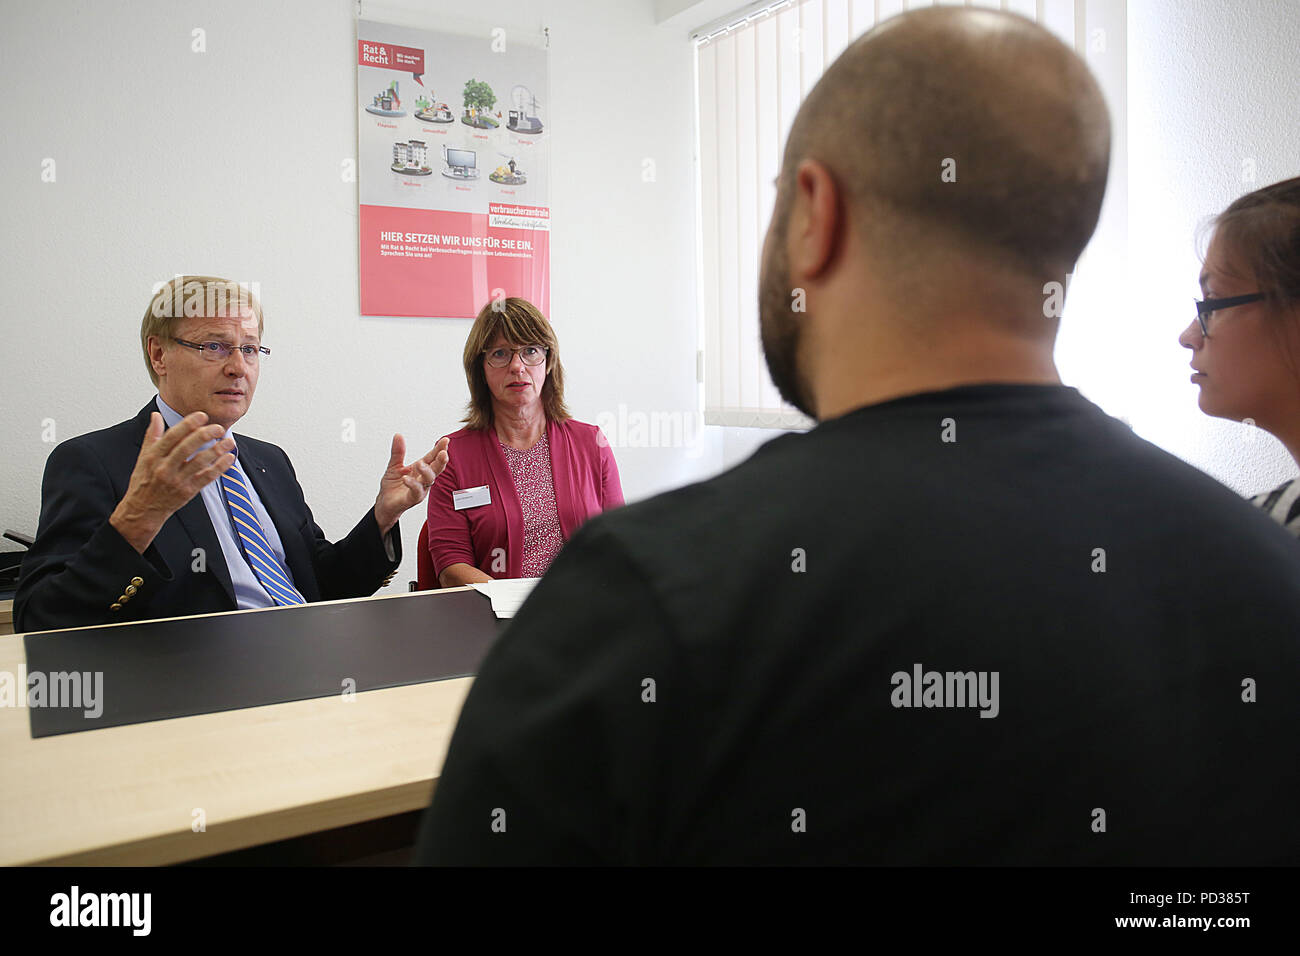 Remscheid, Germany. 06th Aug, 2018. North Rhine-Westphalia's Minister of Justice Peter Biesenbach (L) of the Christian Democratic Union (CDU), and Lydia Schwertner (2-L), head of the office of the consumer advice centre Remscheid, take part in the counselling interview with the married couple Cuma (2-R) and Sylvana (r) Eryilmaz. The Minister of Justice took part in consultations at the consumer advice centre. Credit: Oliver Berg/dpa/Alamy Live News - Stock Image